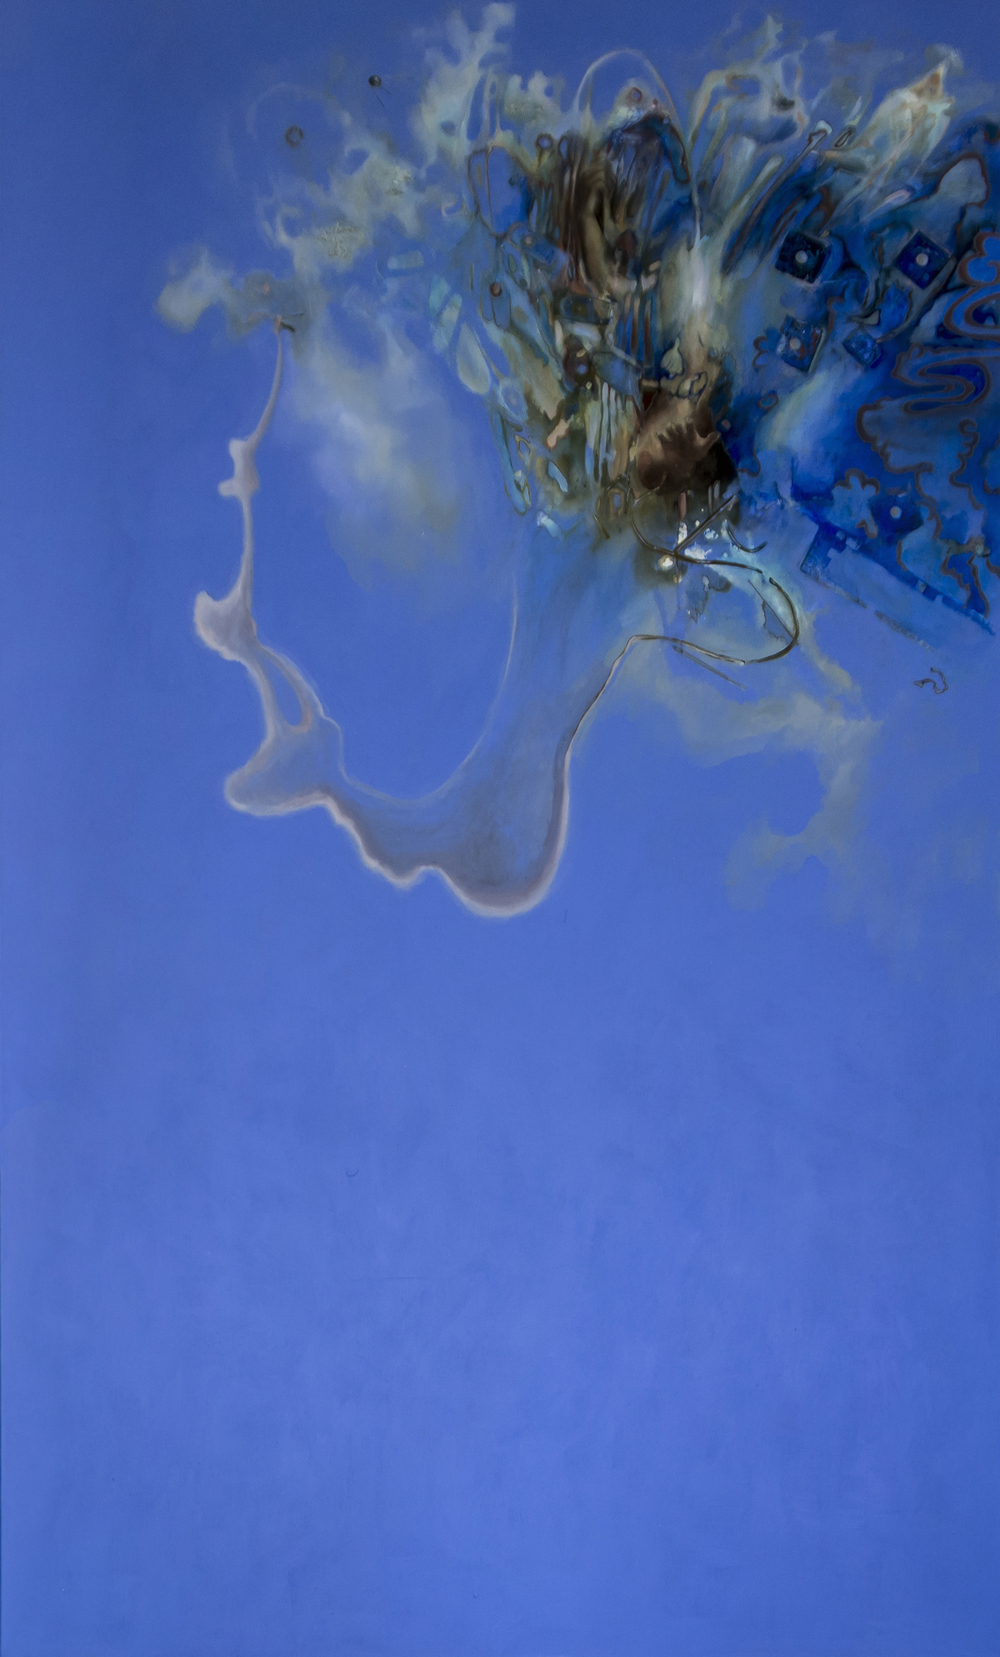 Cloud (Panel 8), Acrylic on Canvas, 10' by 7', 2015